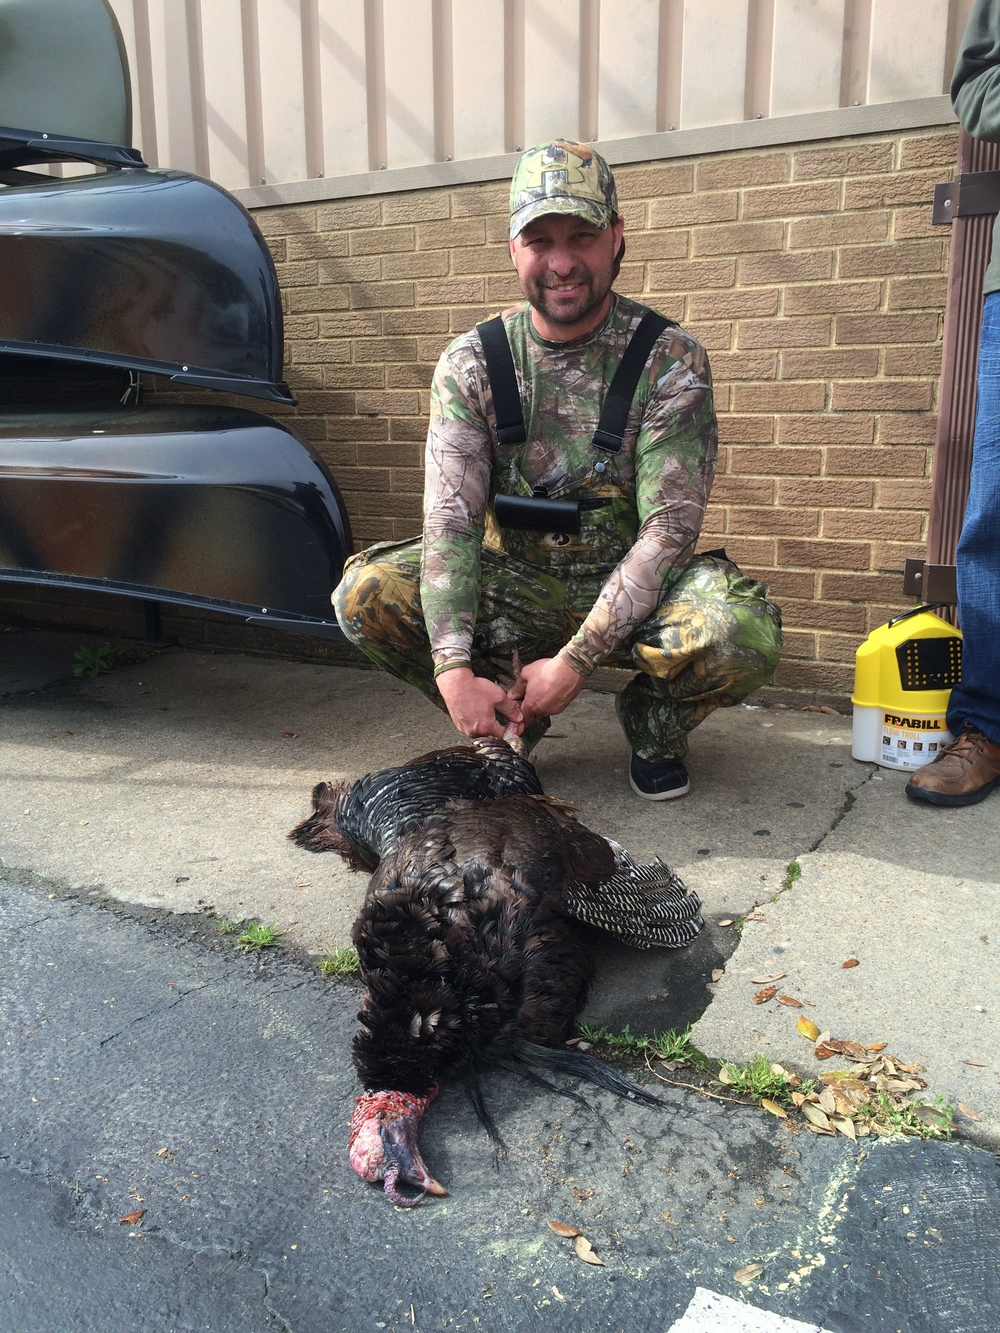 John Holston got this triple bearded turkey in Surry, VA on opening day of turkey season 2015!